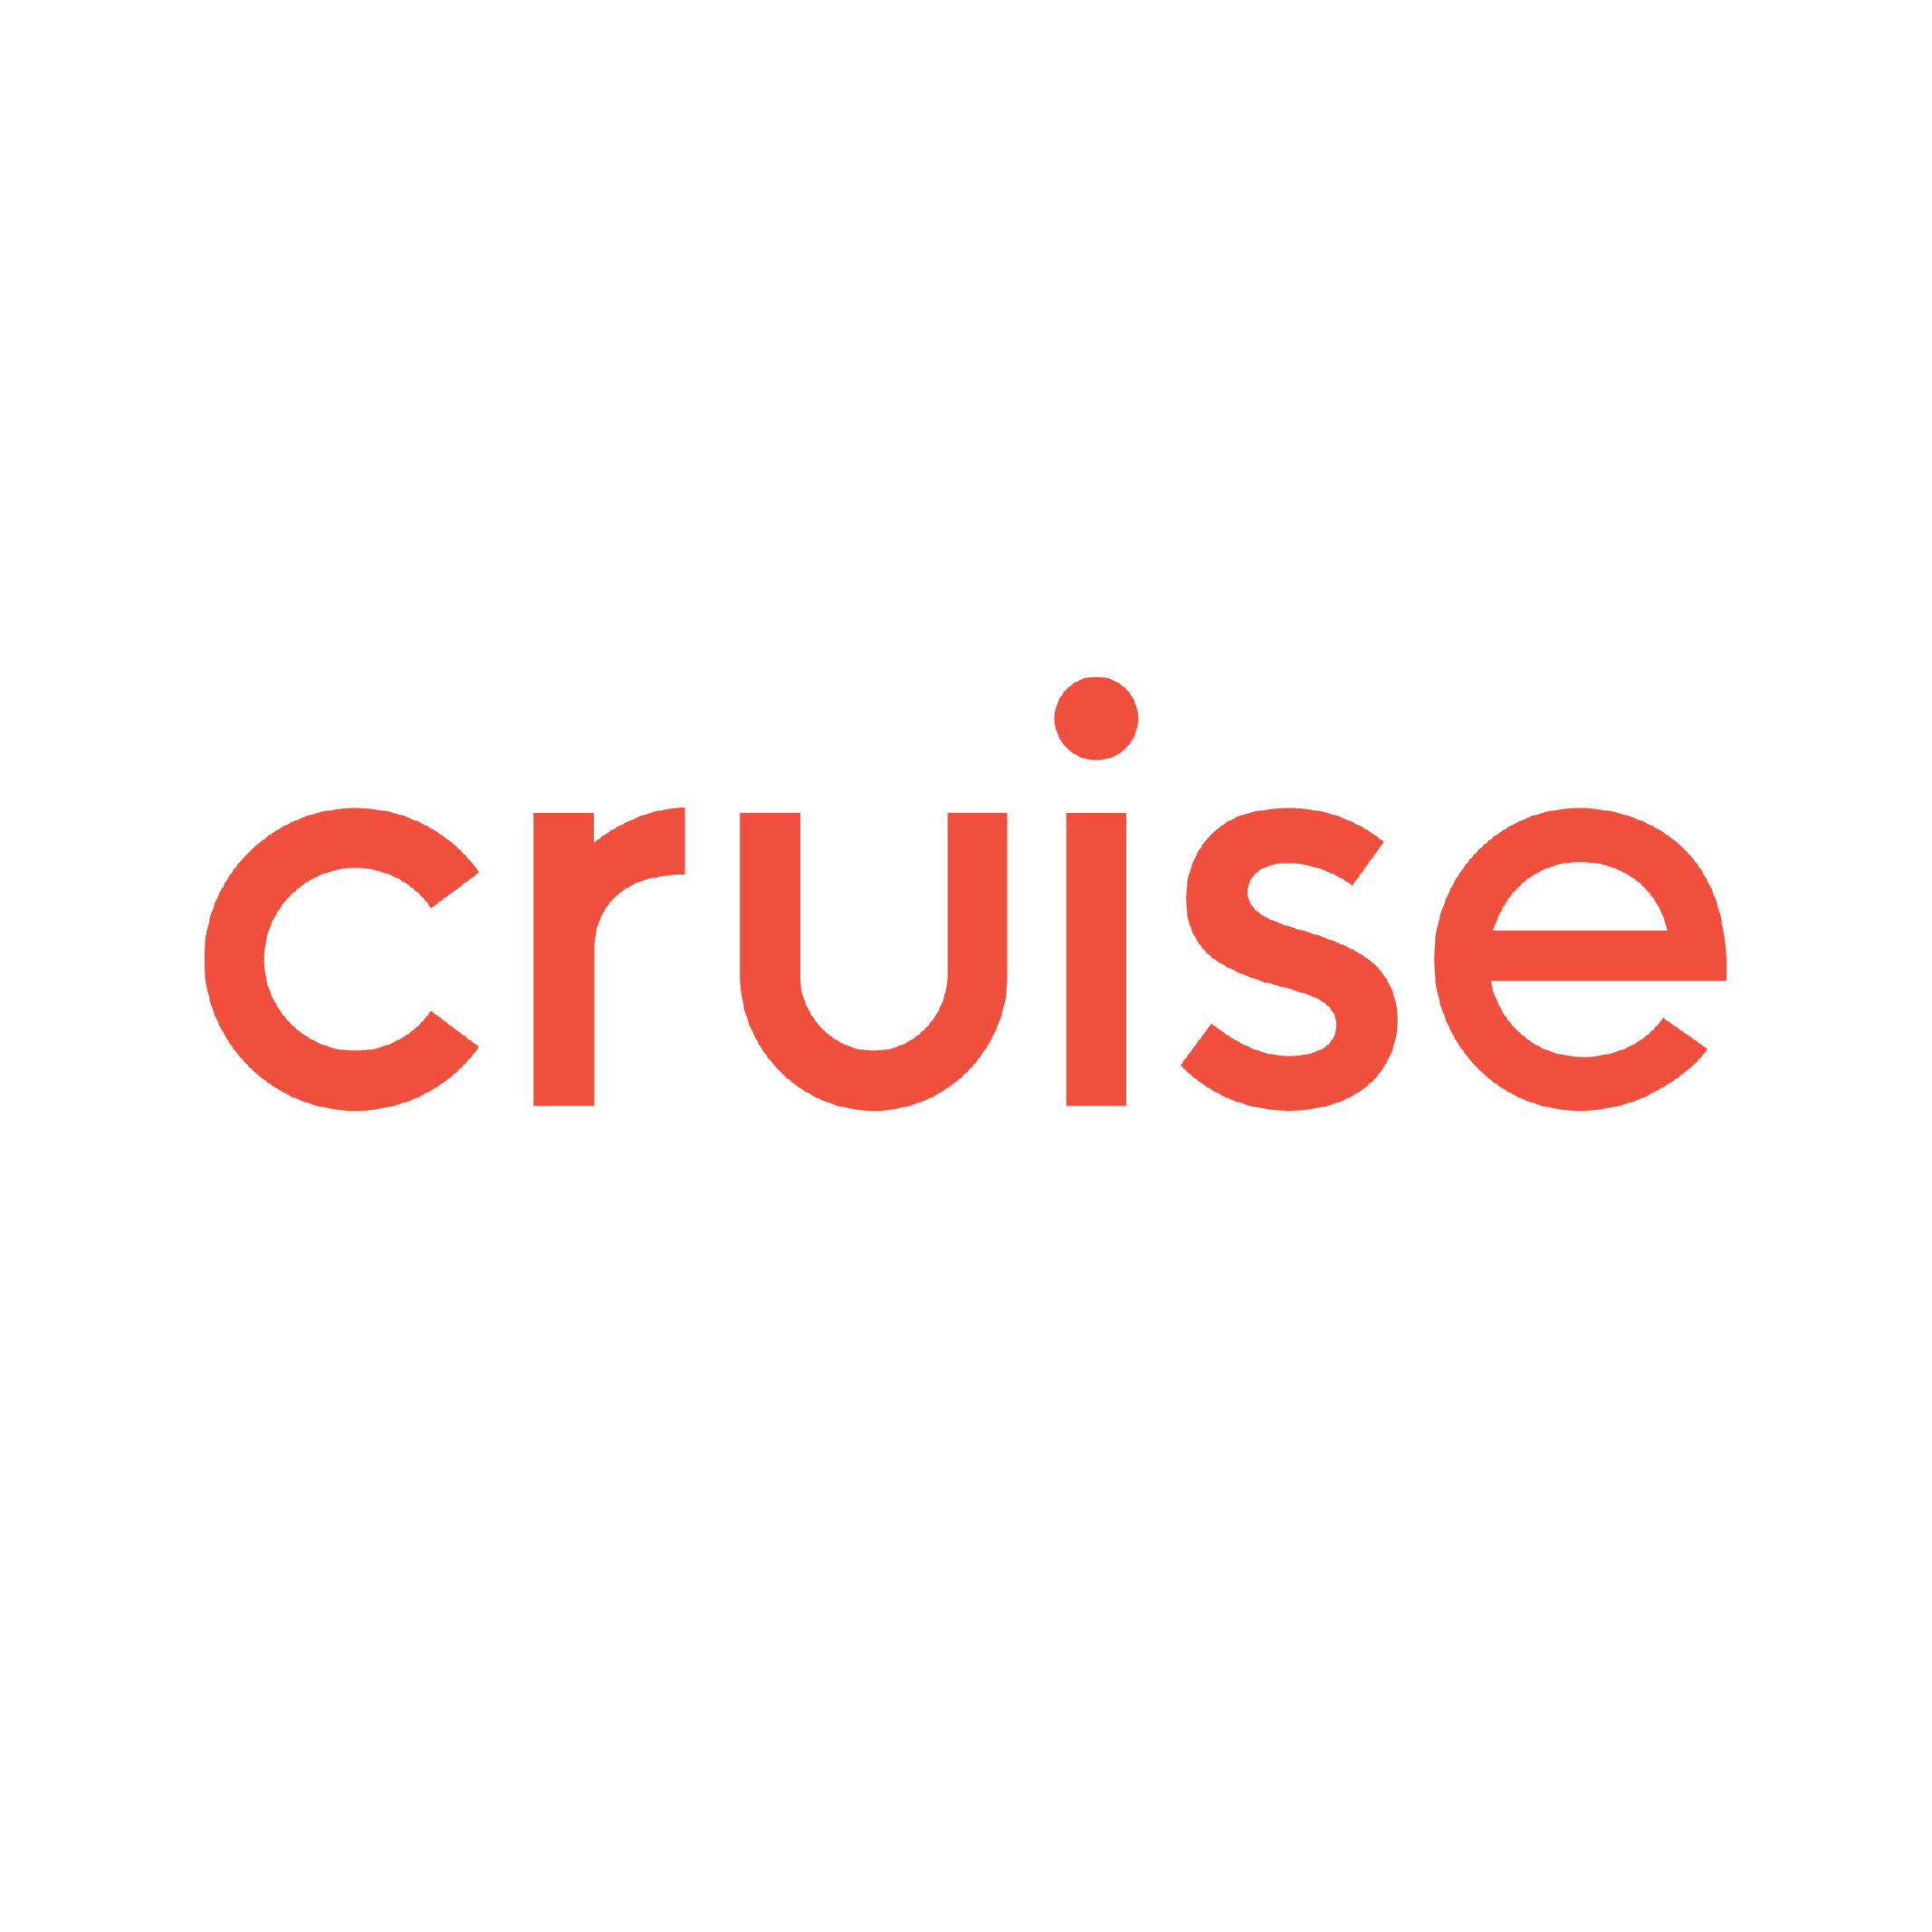 Cruise, the San Francisco-based self-driving unit of General Motors has joined forces with Humanmade to support maker based advanced manufacturing programs.